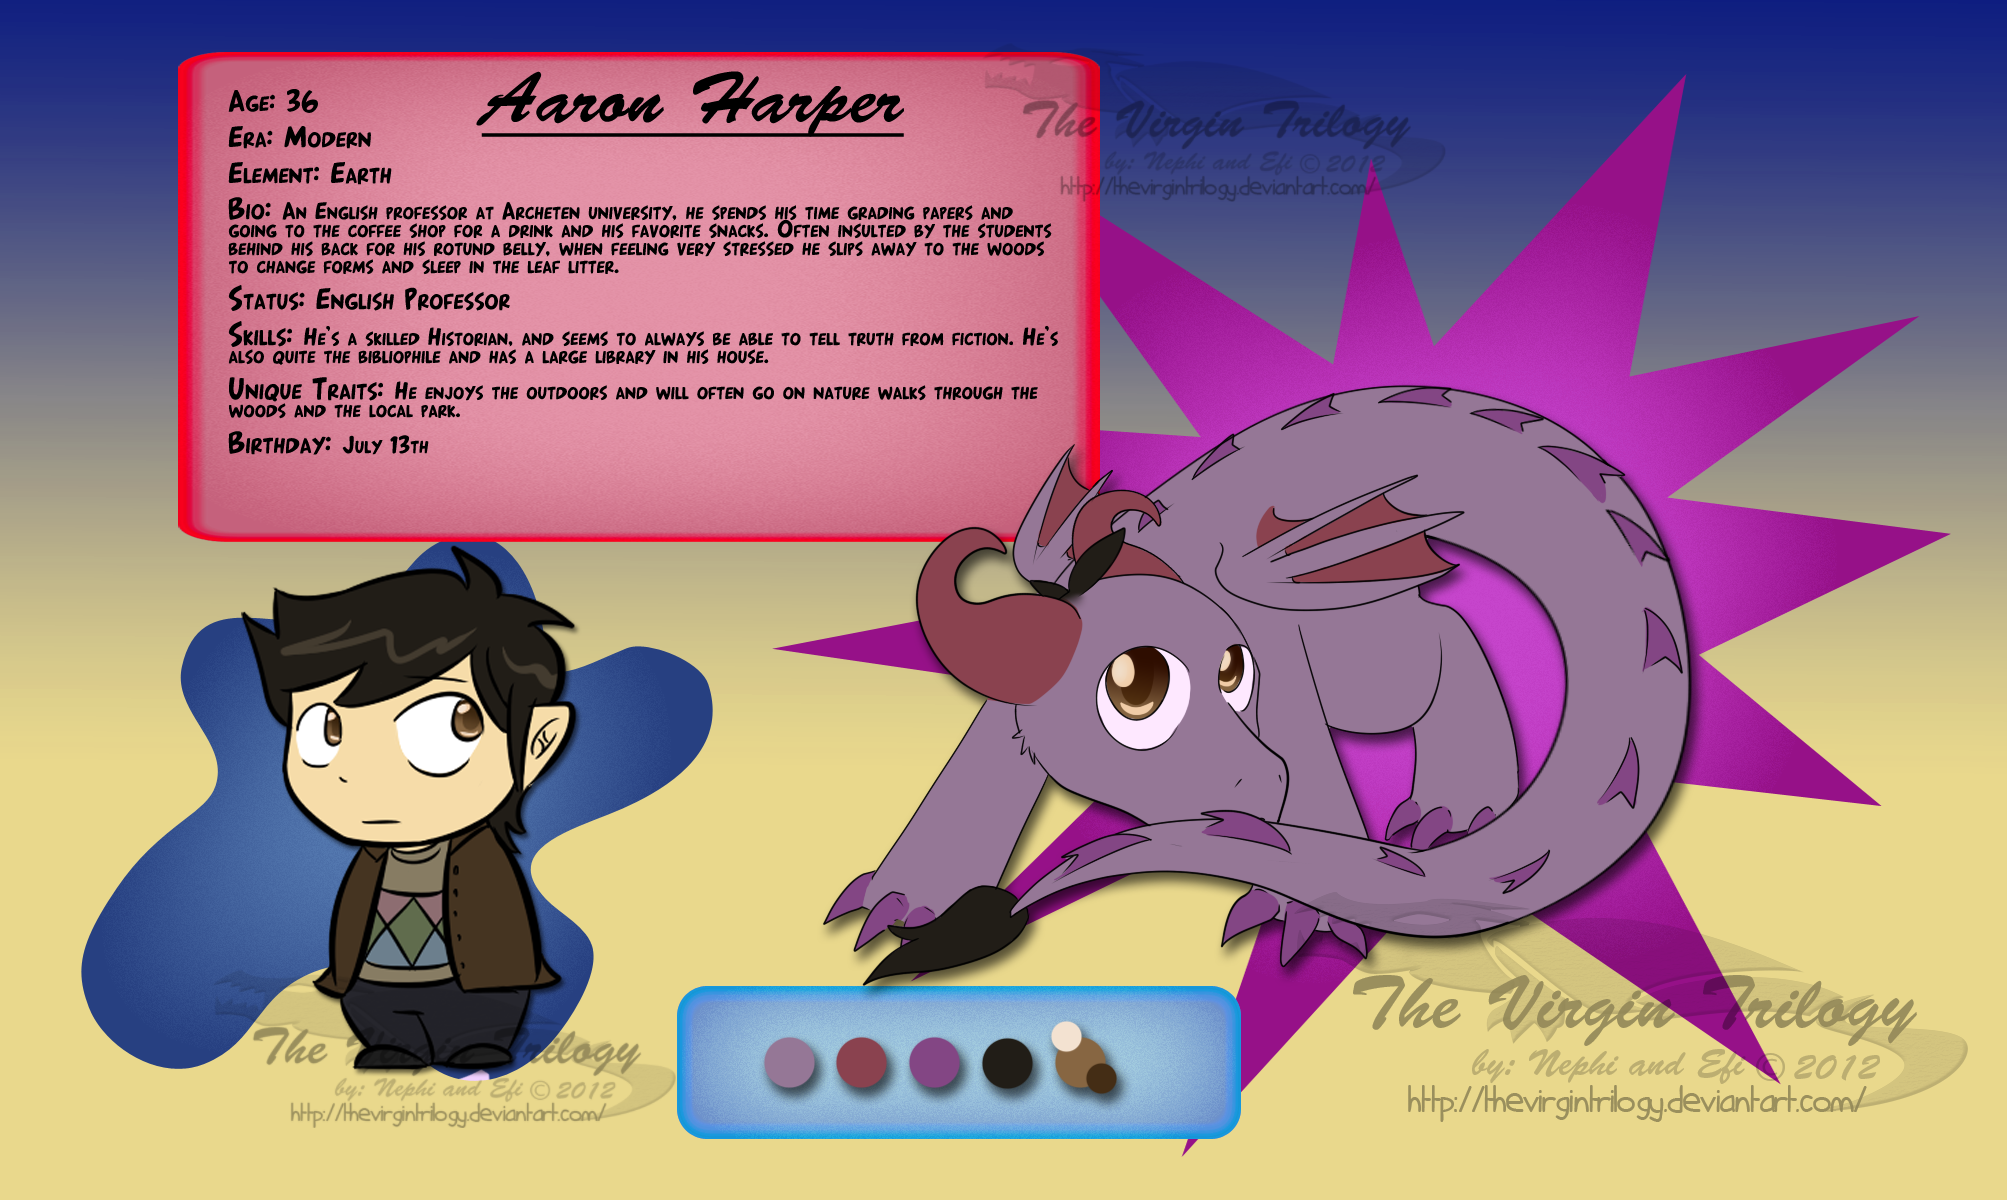 Aaron Harper ref by CyphonFiction